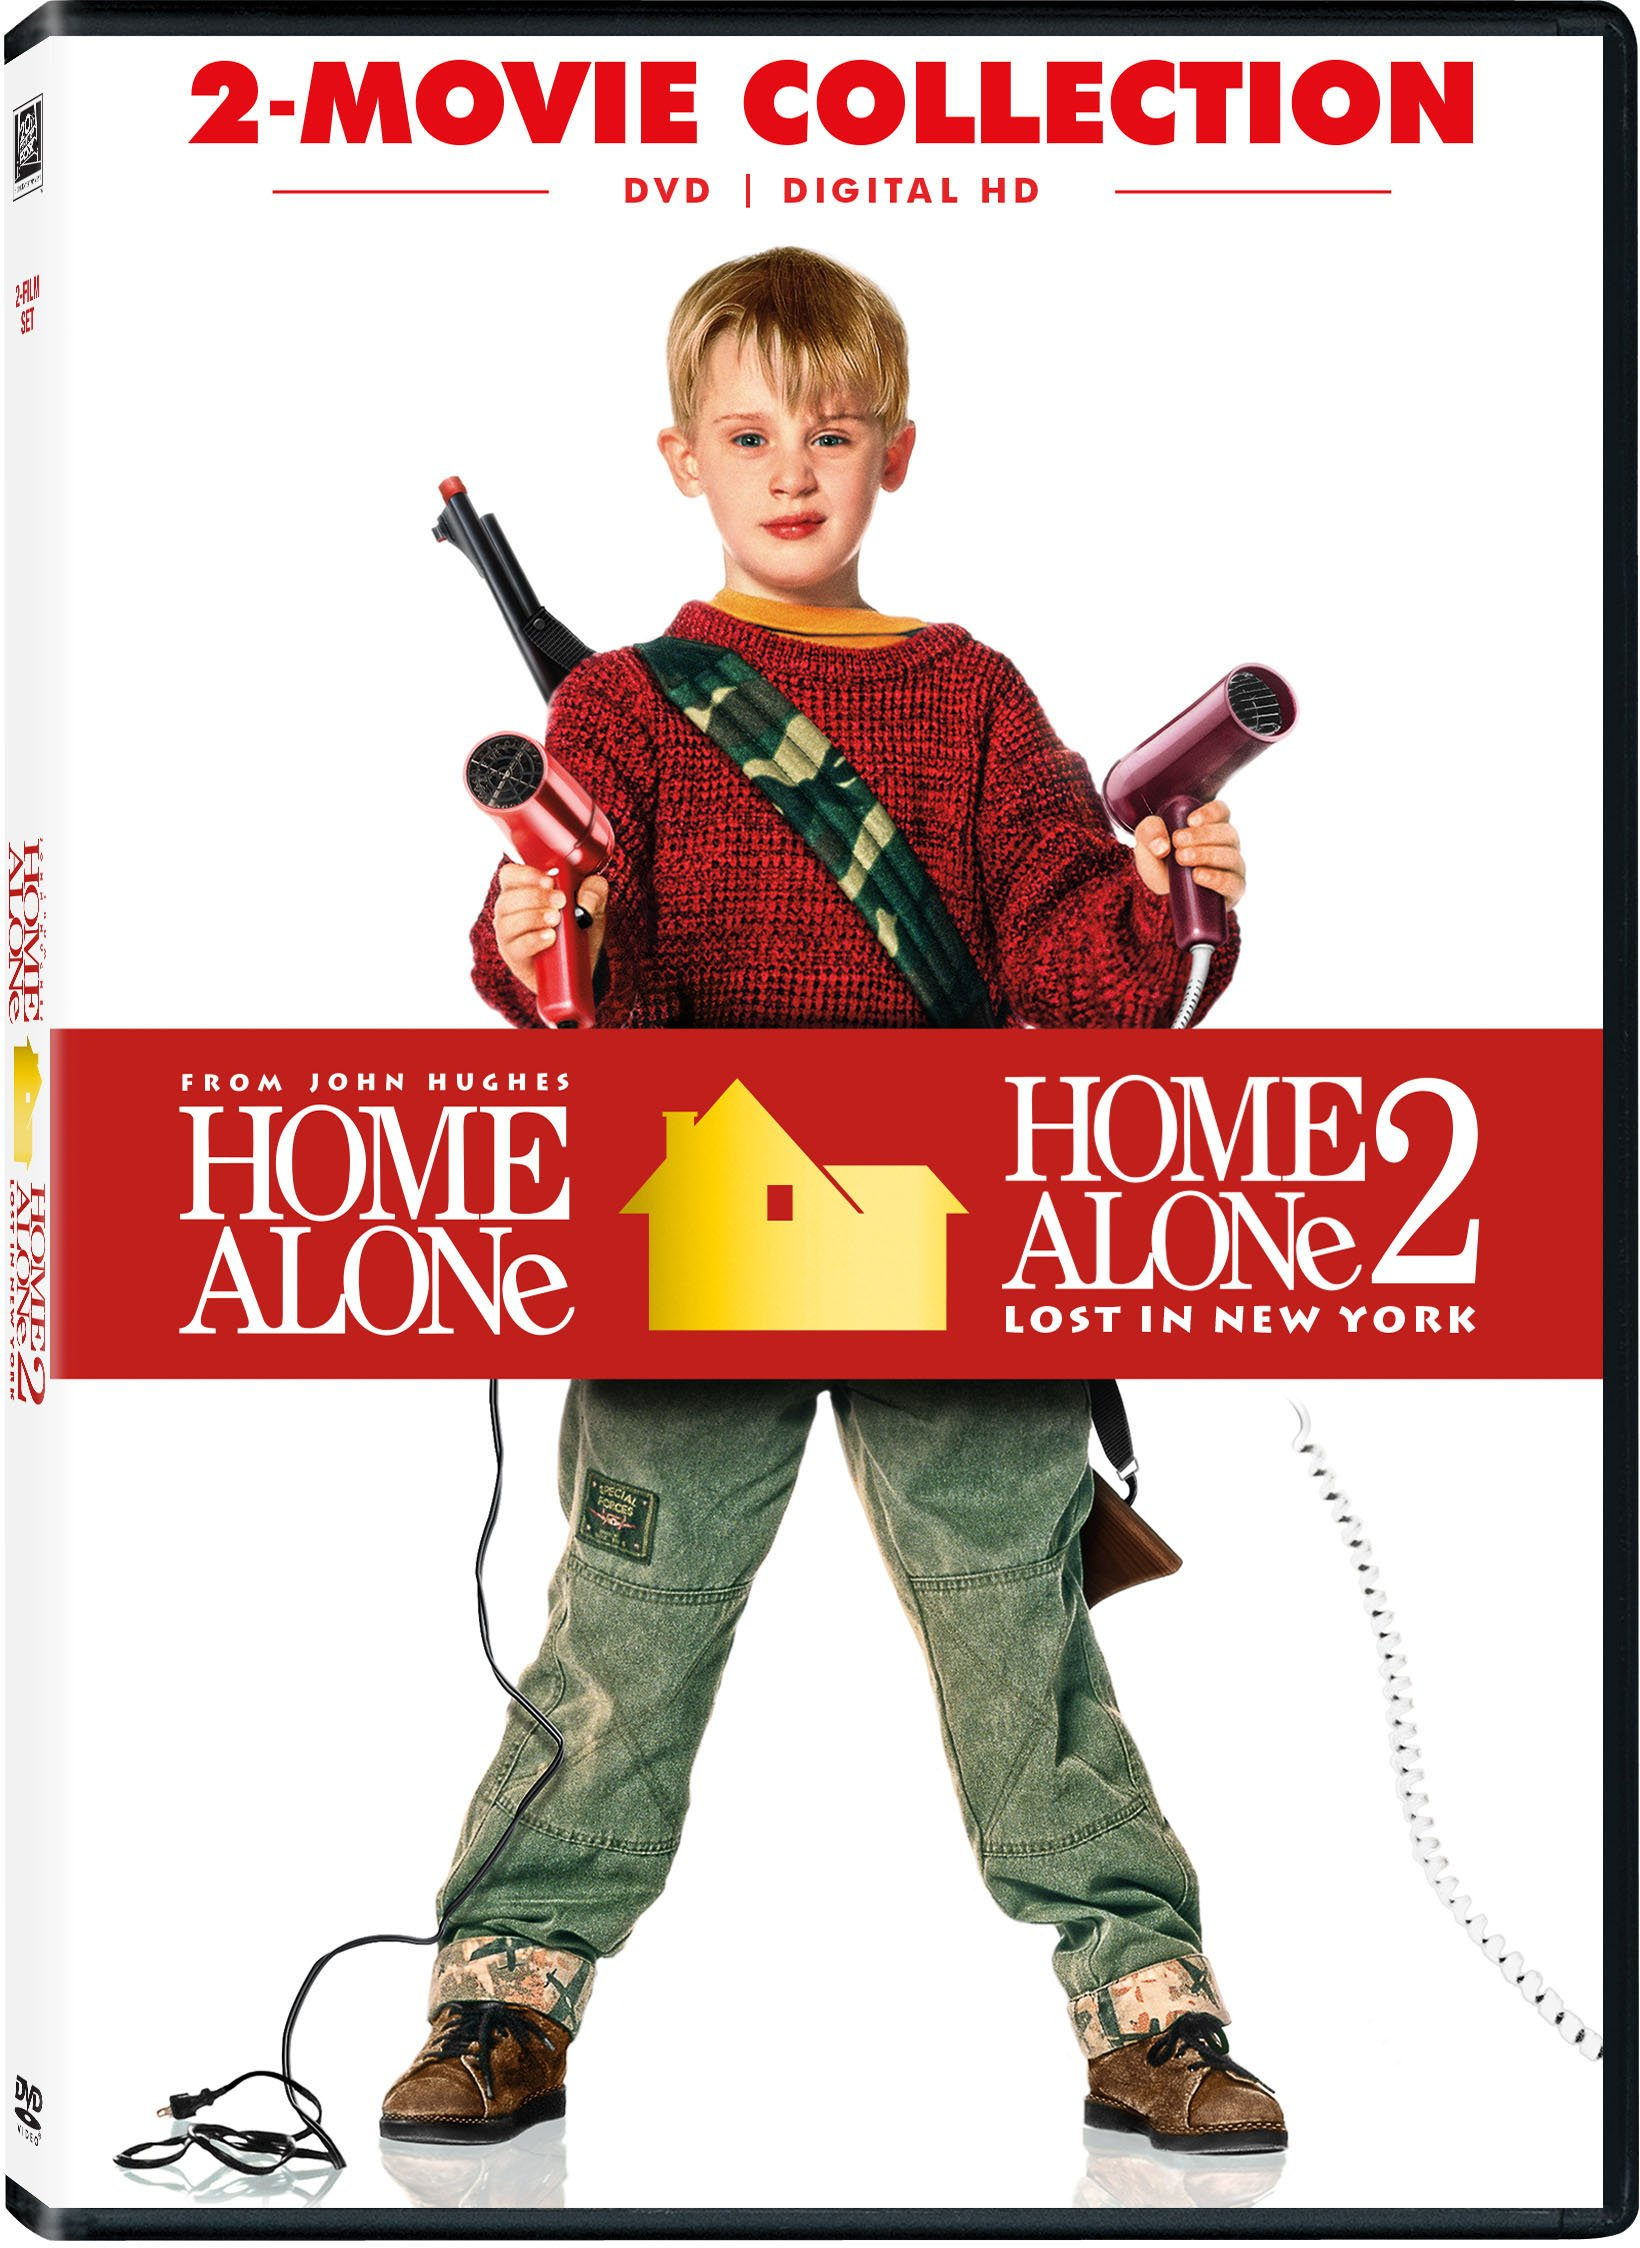 DVD : Home Alone / Home Alone 2: Lost in New York (Dolby, , Dubbed, Widescreen, Digitally Mastered in HD)